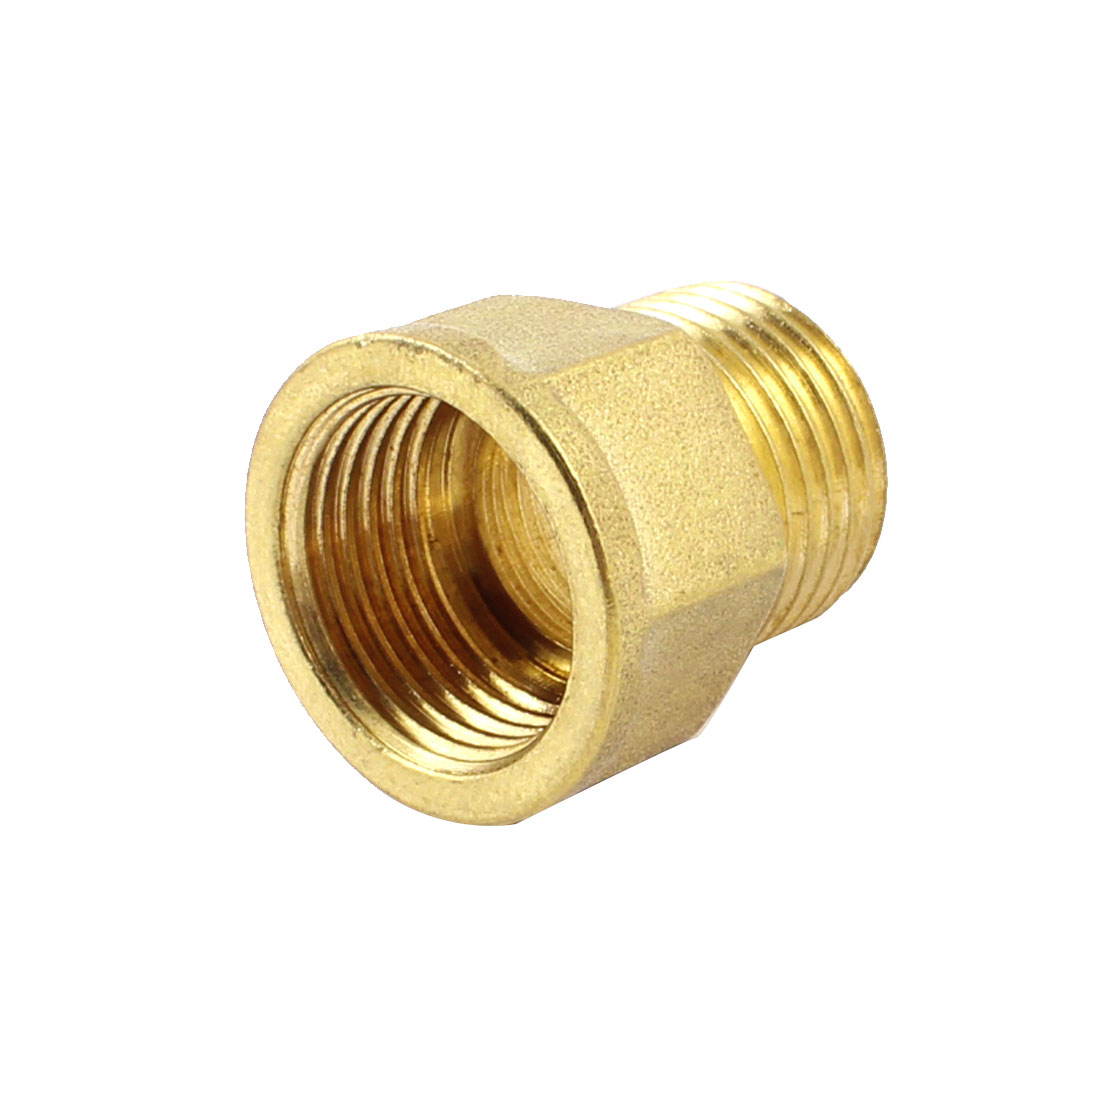 "1/2"" NPT Female to 1/2"" PT Male Hex Thread Bushing Piping Connector Adapter"